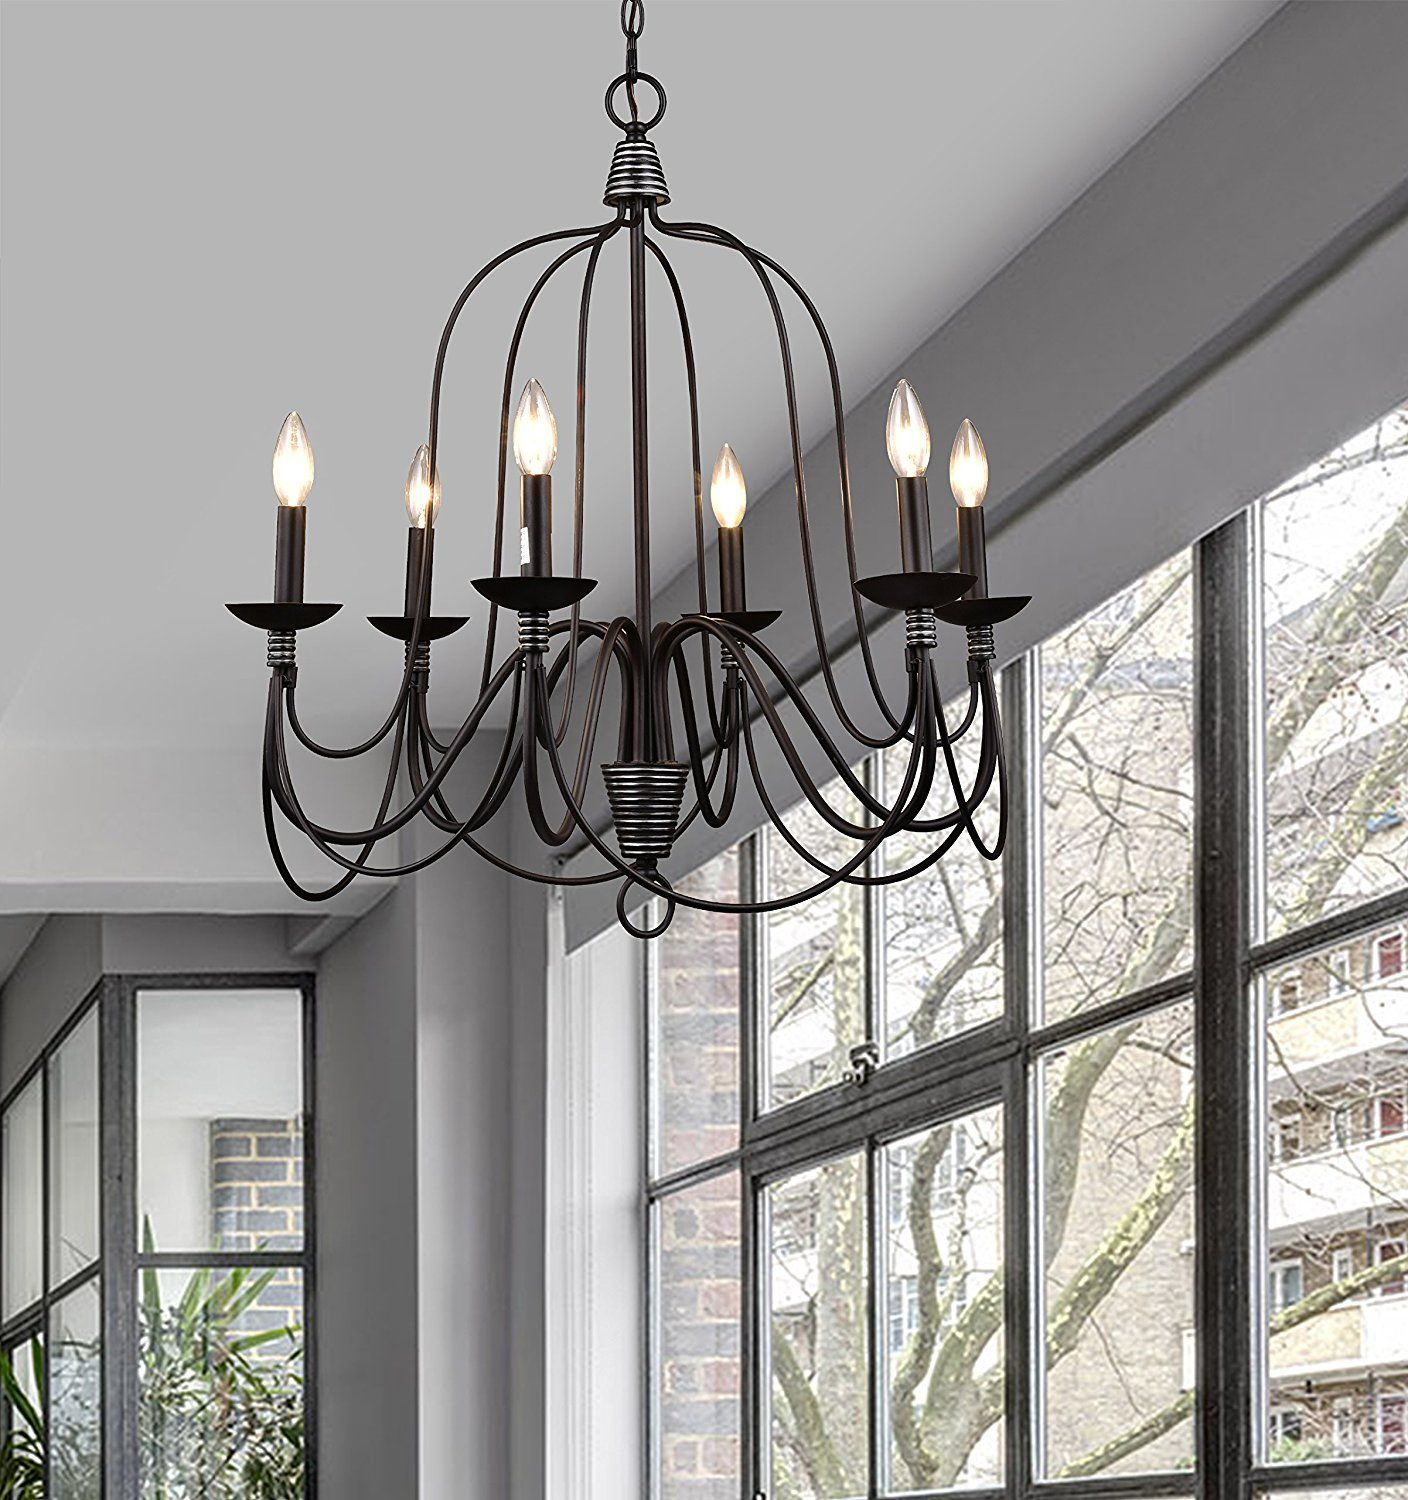 Claxy ecopower lighting industrial vintage 6 lights candle claxy ecopower lighting industrial vintage 6 lights candle chandeliers amazon arubaitofo Image collections